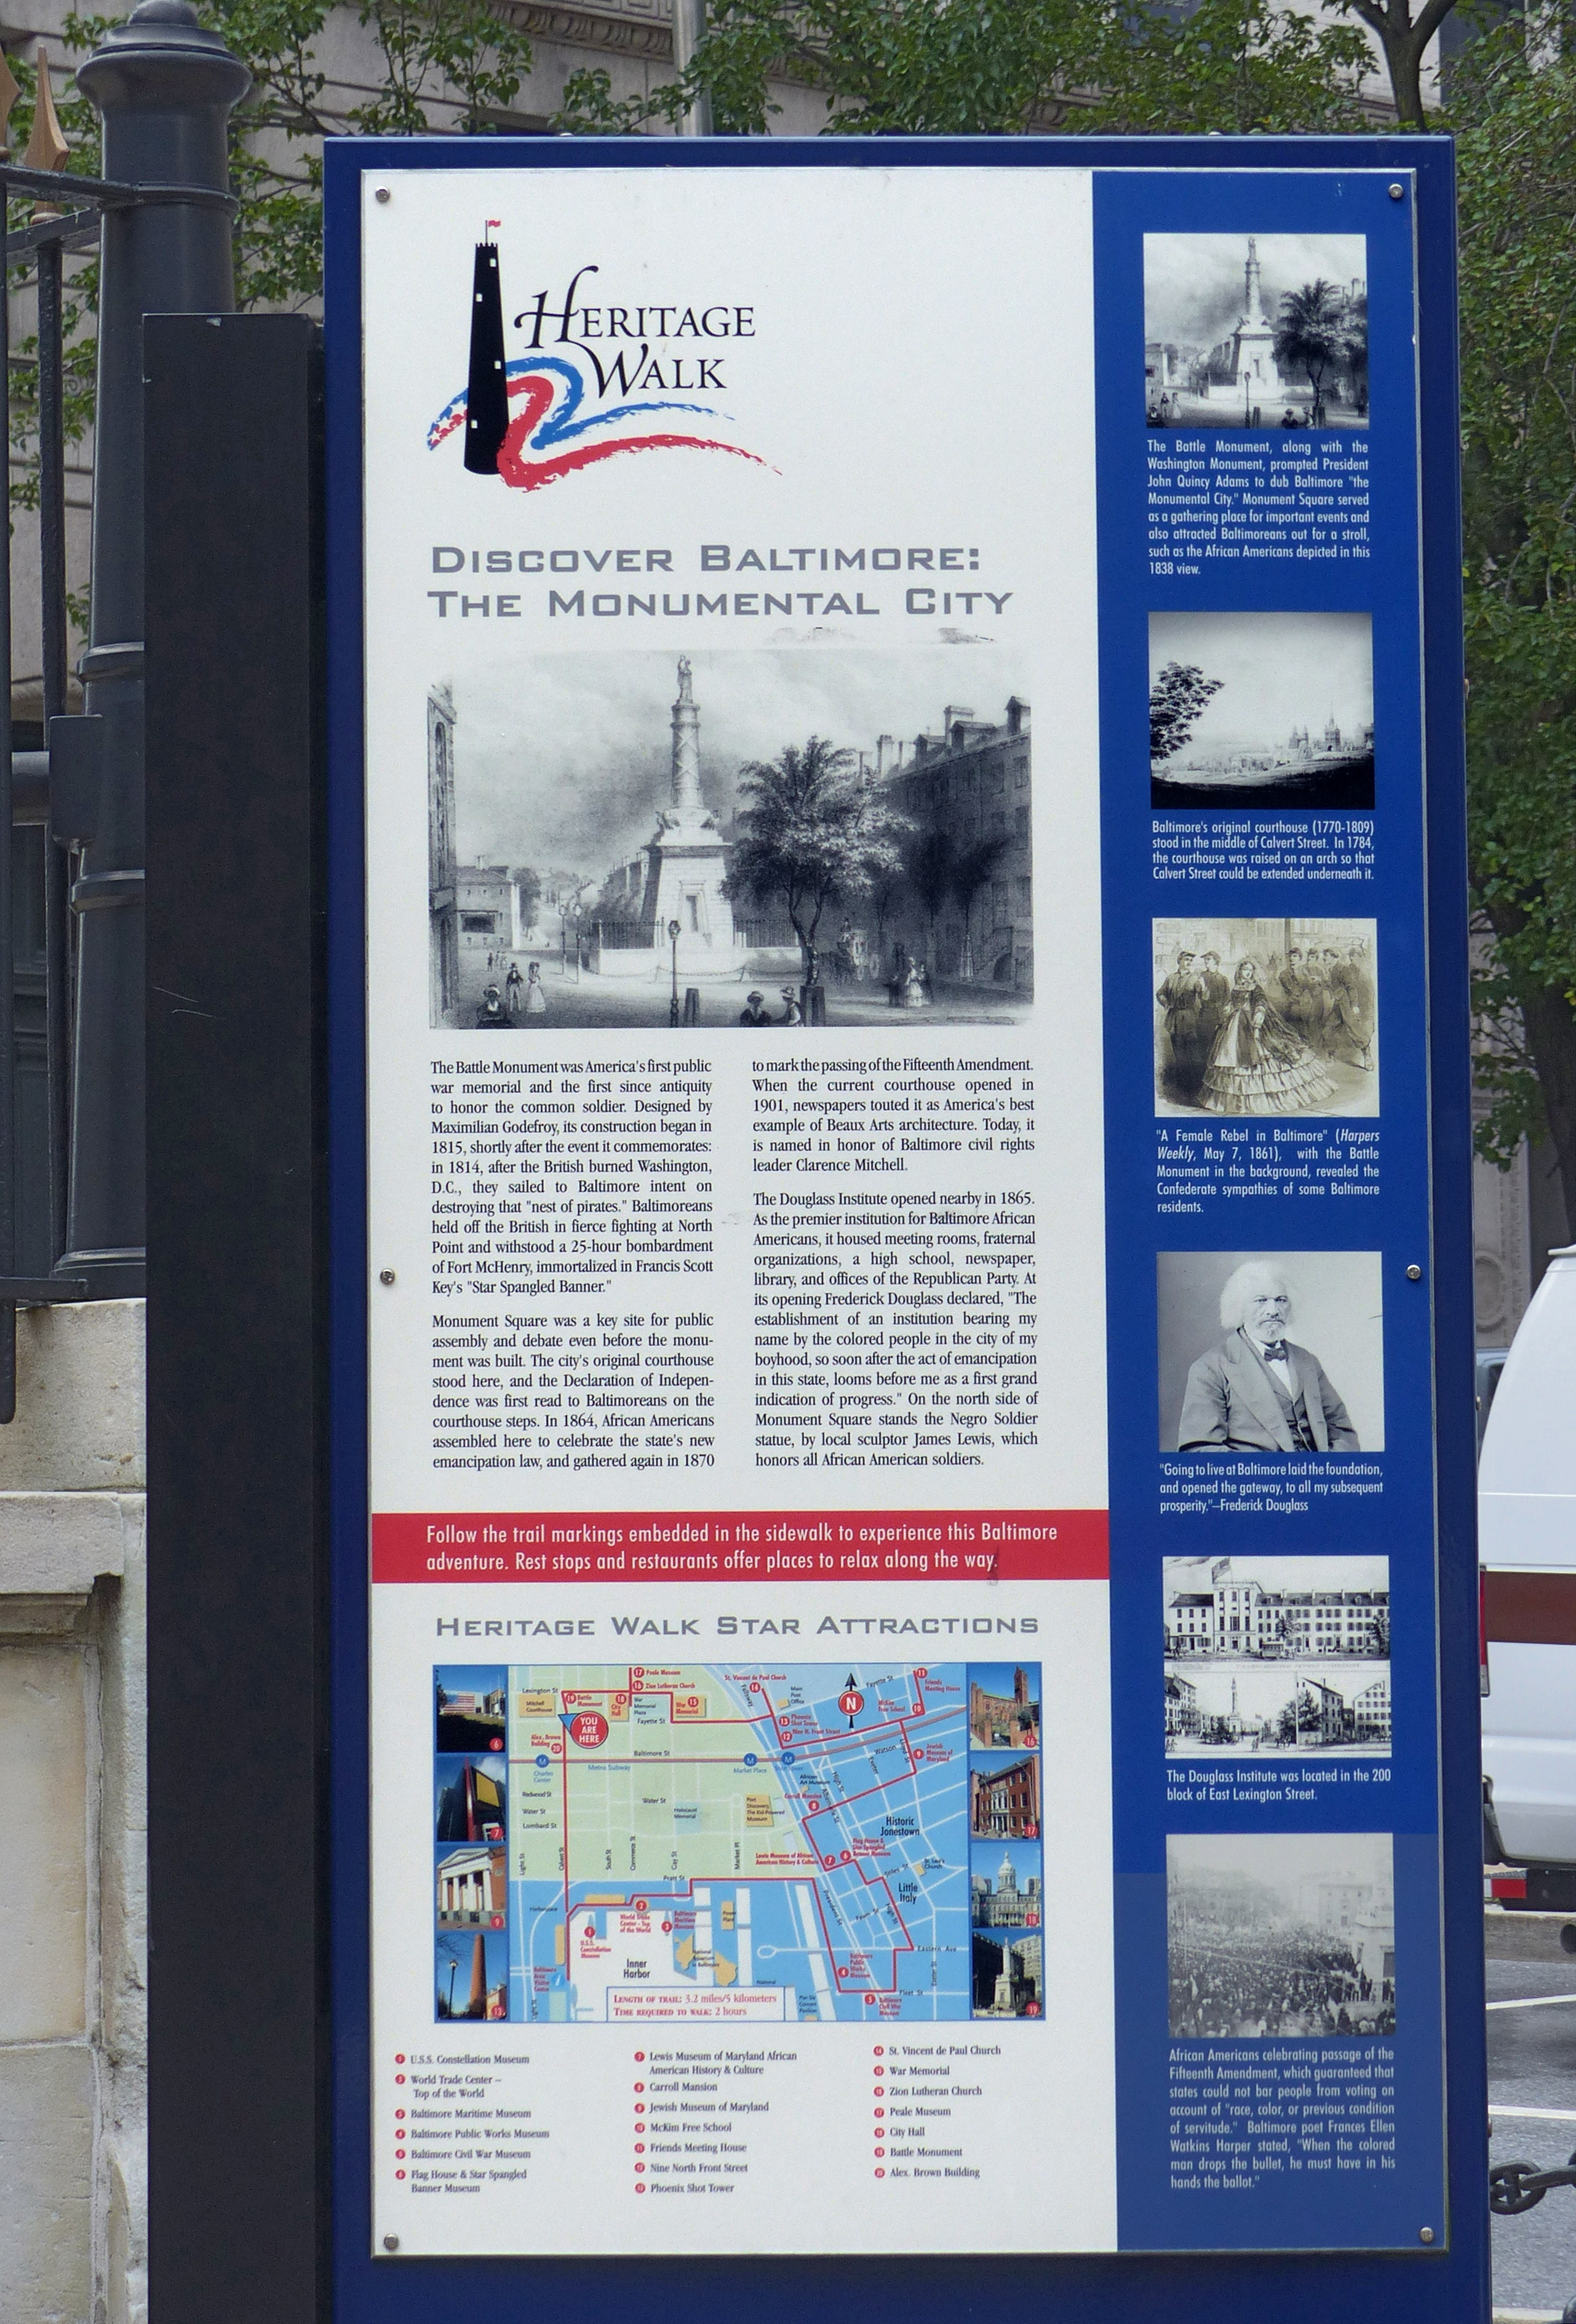 Discover Baltimore: The Monumental City Marker